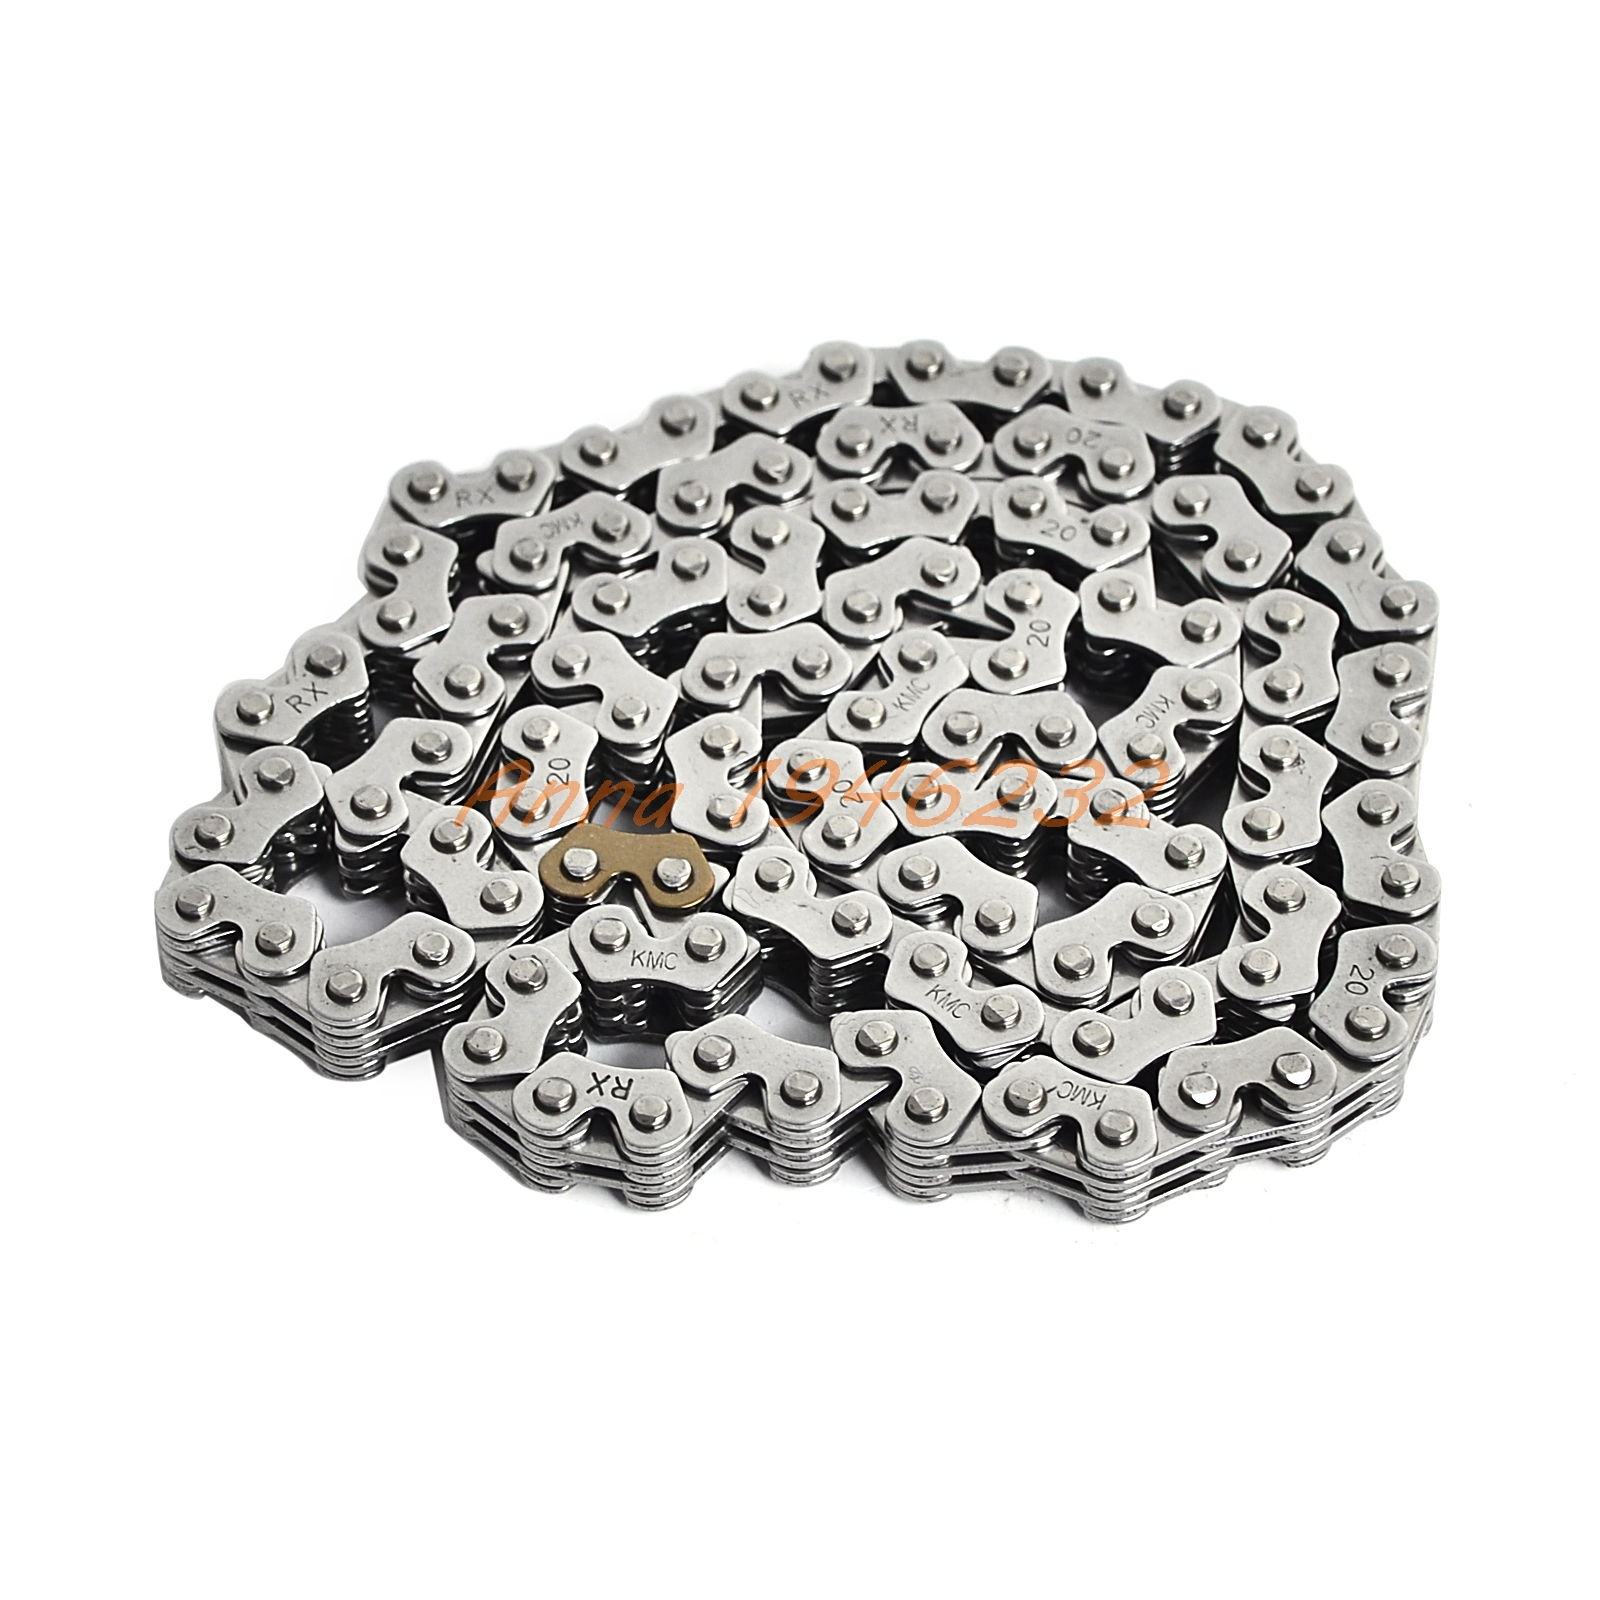 New KMC Camshaft Chain Cam Timing Chain For Yamaha FZR250 1986 1987 1988 1989 1990 1991 1992 1993